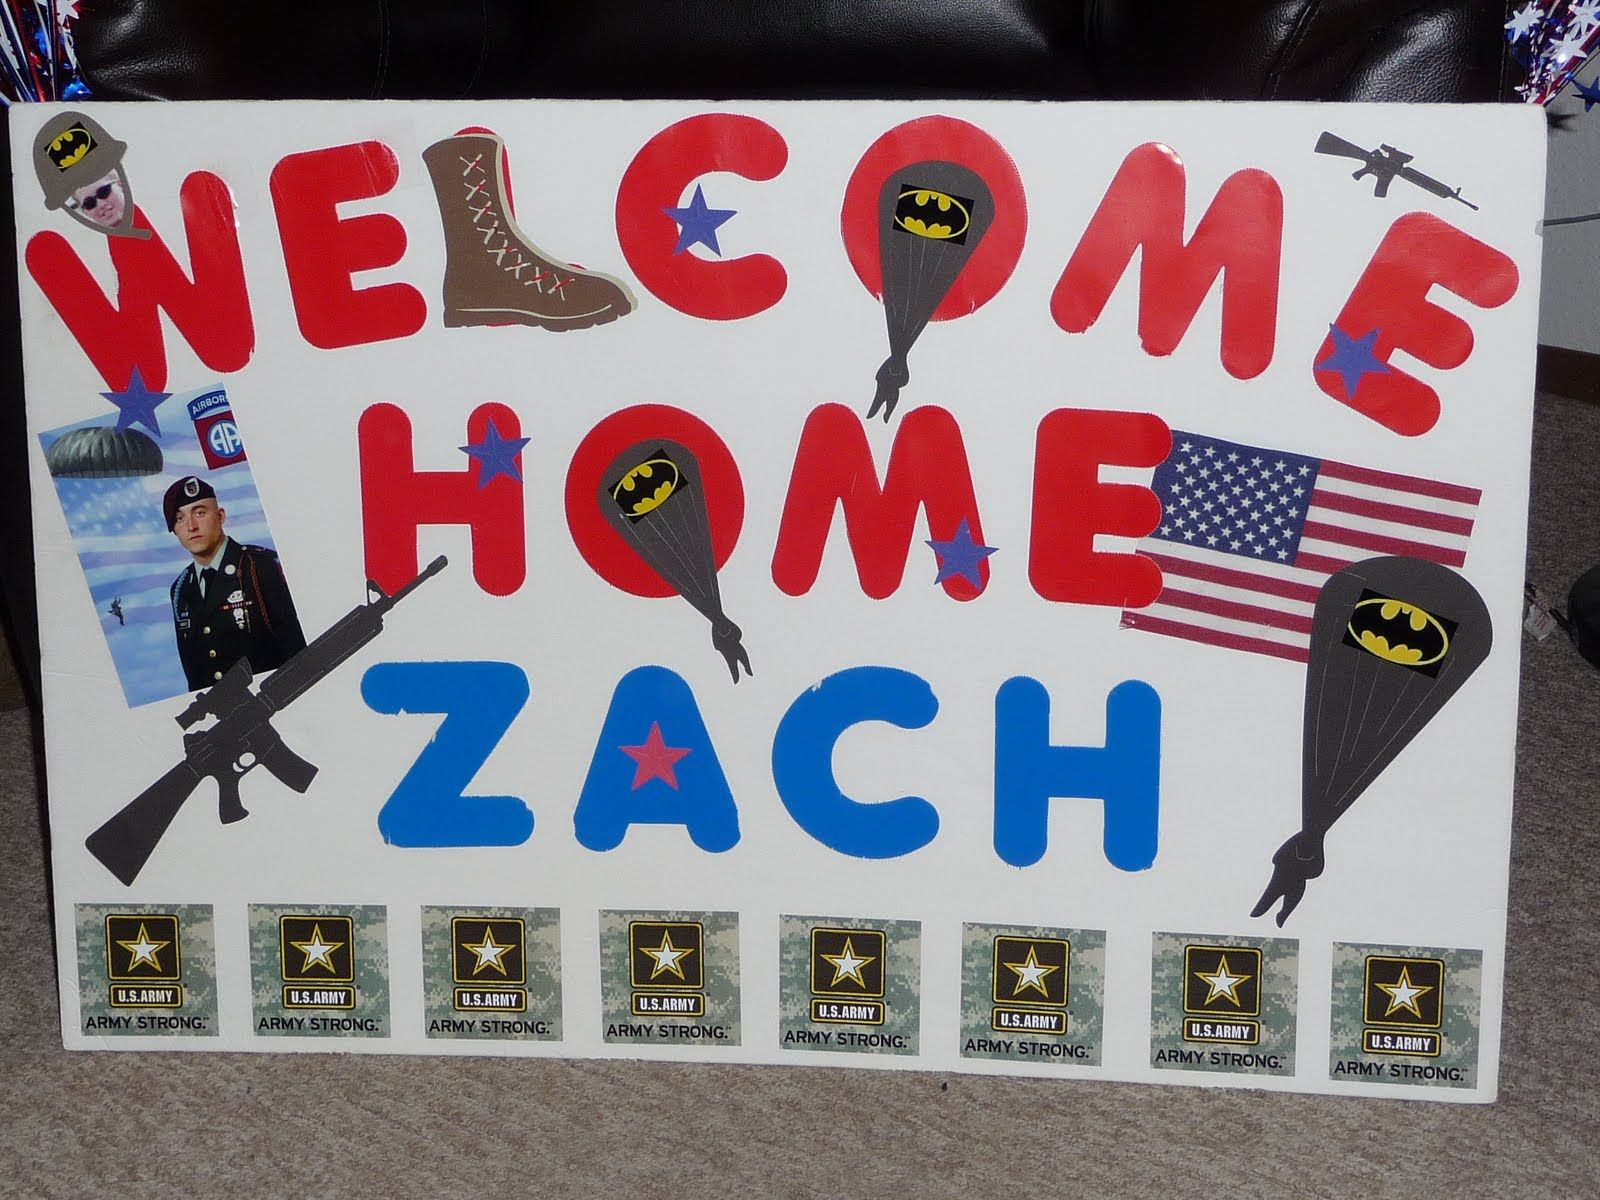 Welcome Home Soldier Party Ideas  Welcome Home Sign Ideas. Ideas For Decorating A Kitchen Island For Christmas. Custom Kitchen Pantry Ideas. Bathroom Color Ideas With Grey Tile. Dinner Ideas Besides Chicken. Small Bathroom Makeovers Before And After Photos. Bar Pub Ideas. Kitchen Accessories Gift Ideas. Lunch Ideas For Home